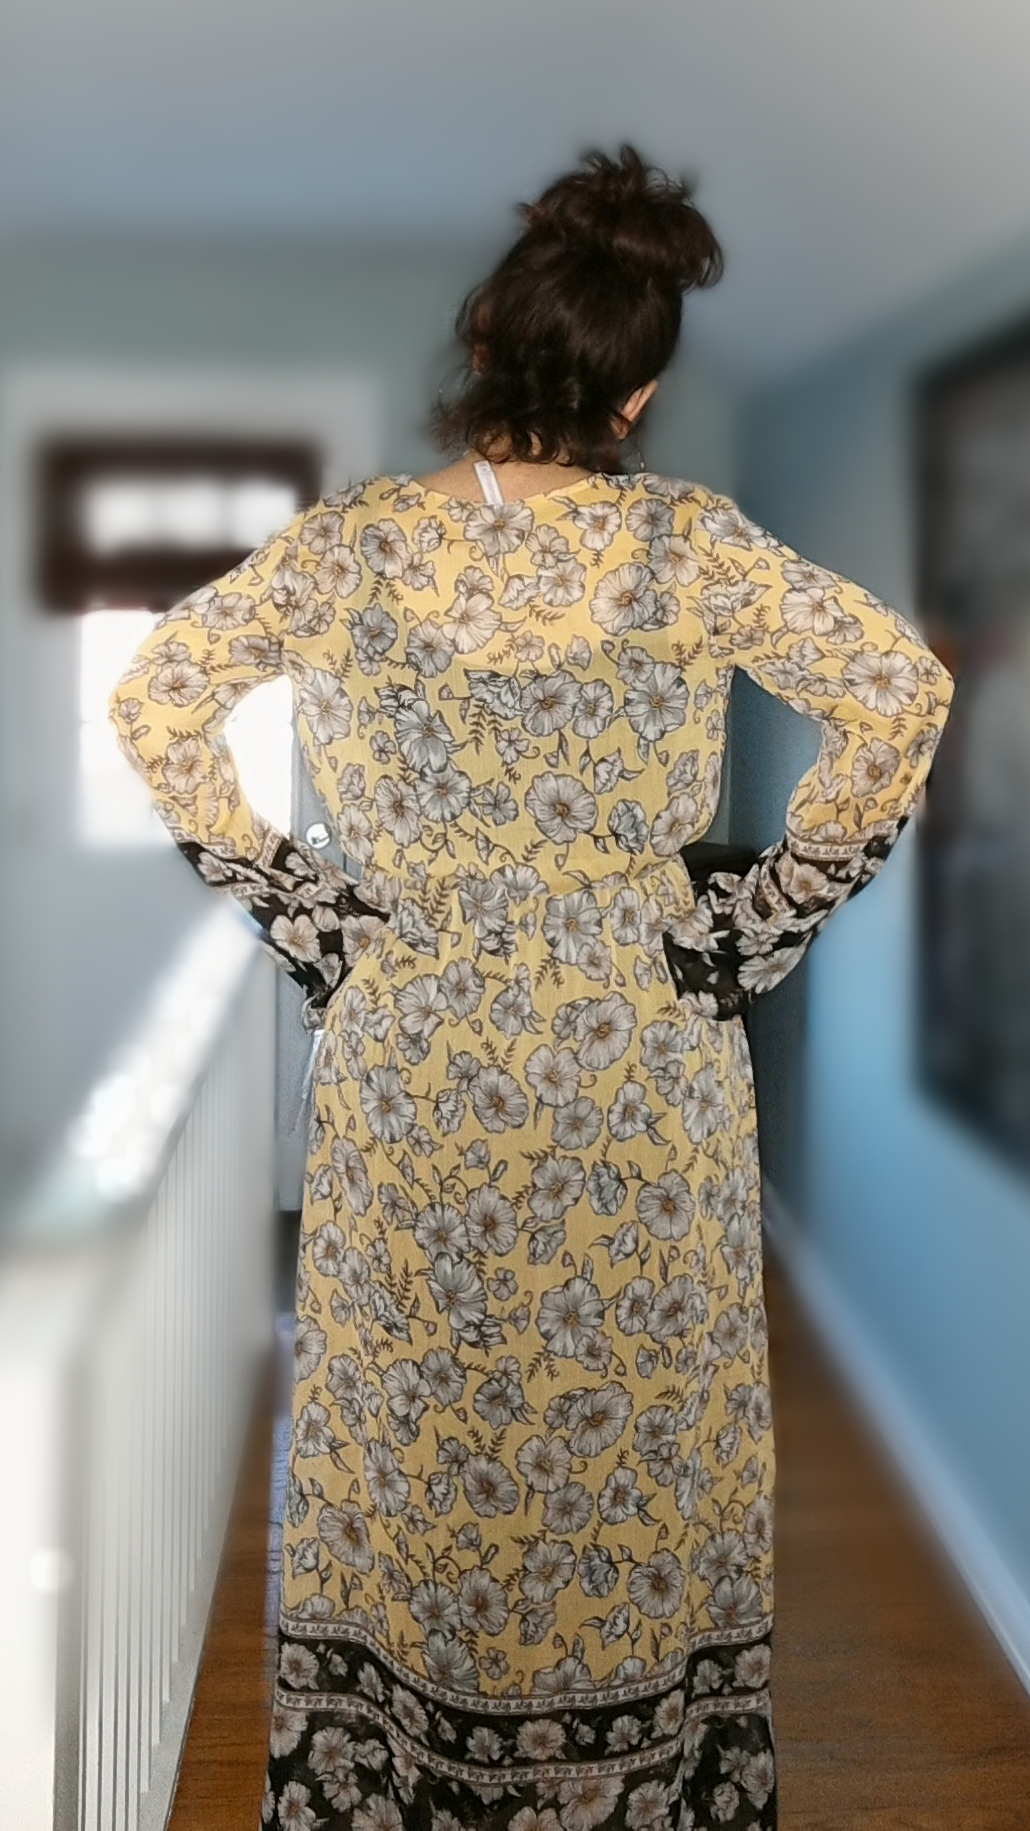 Dress with Leggings - The back view. Obviously the dress is sheer so the black pieces underneath are a great compliment, I think. I may try white at some point but I am usually not a fan of white so I doubt I would like it, for me.